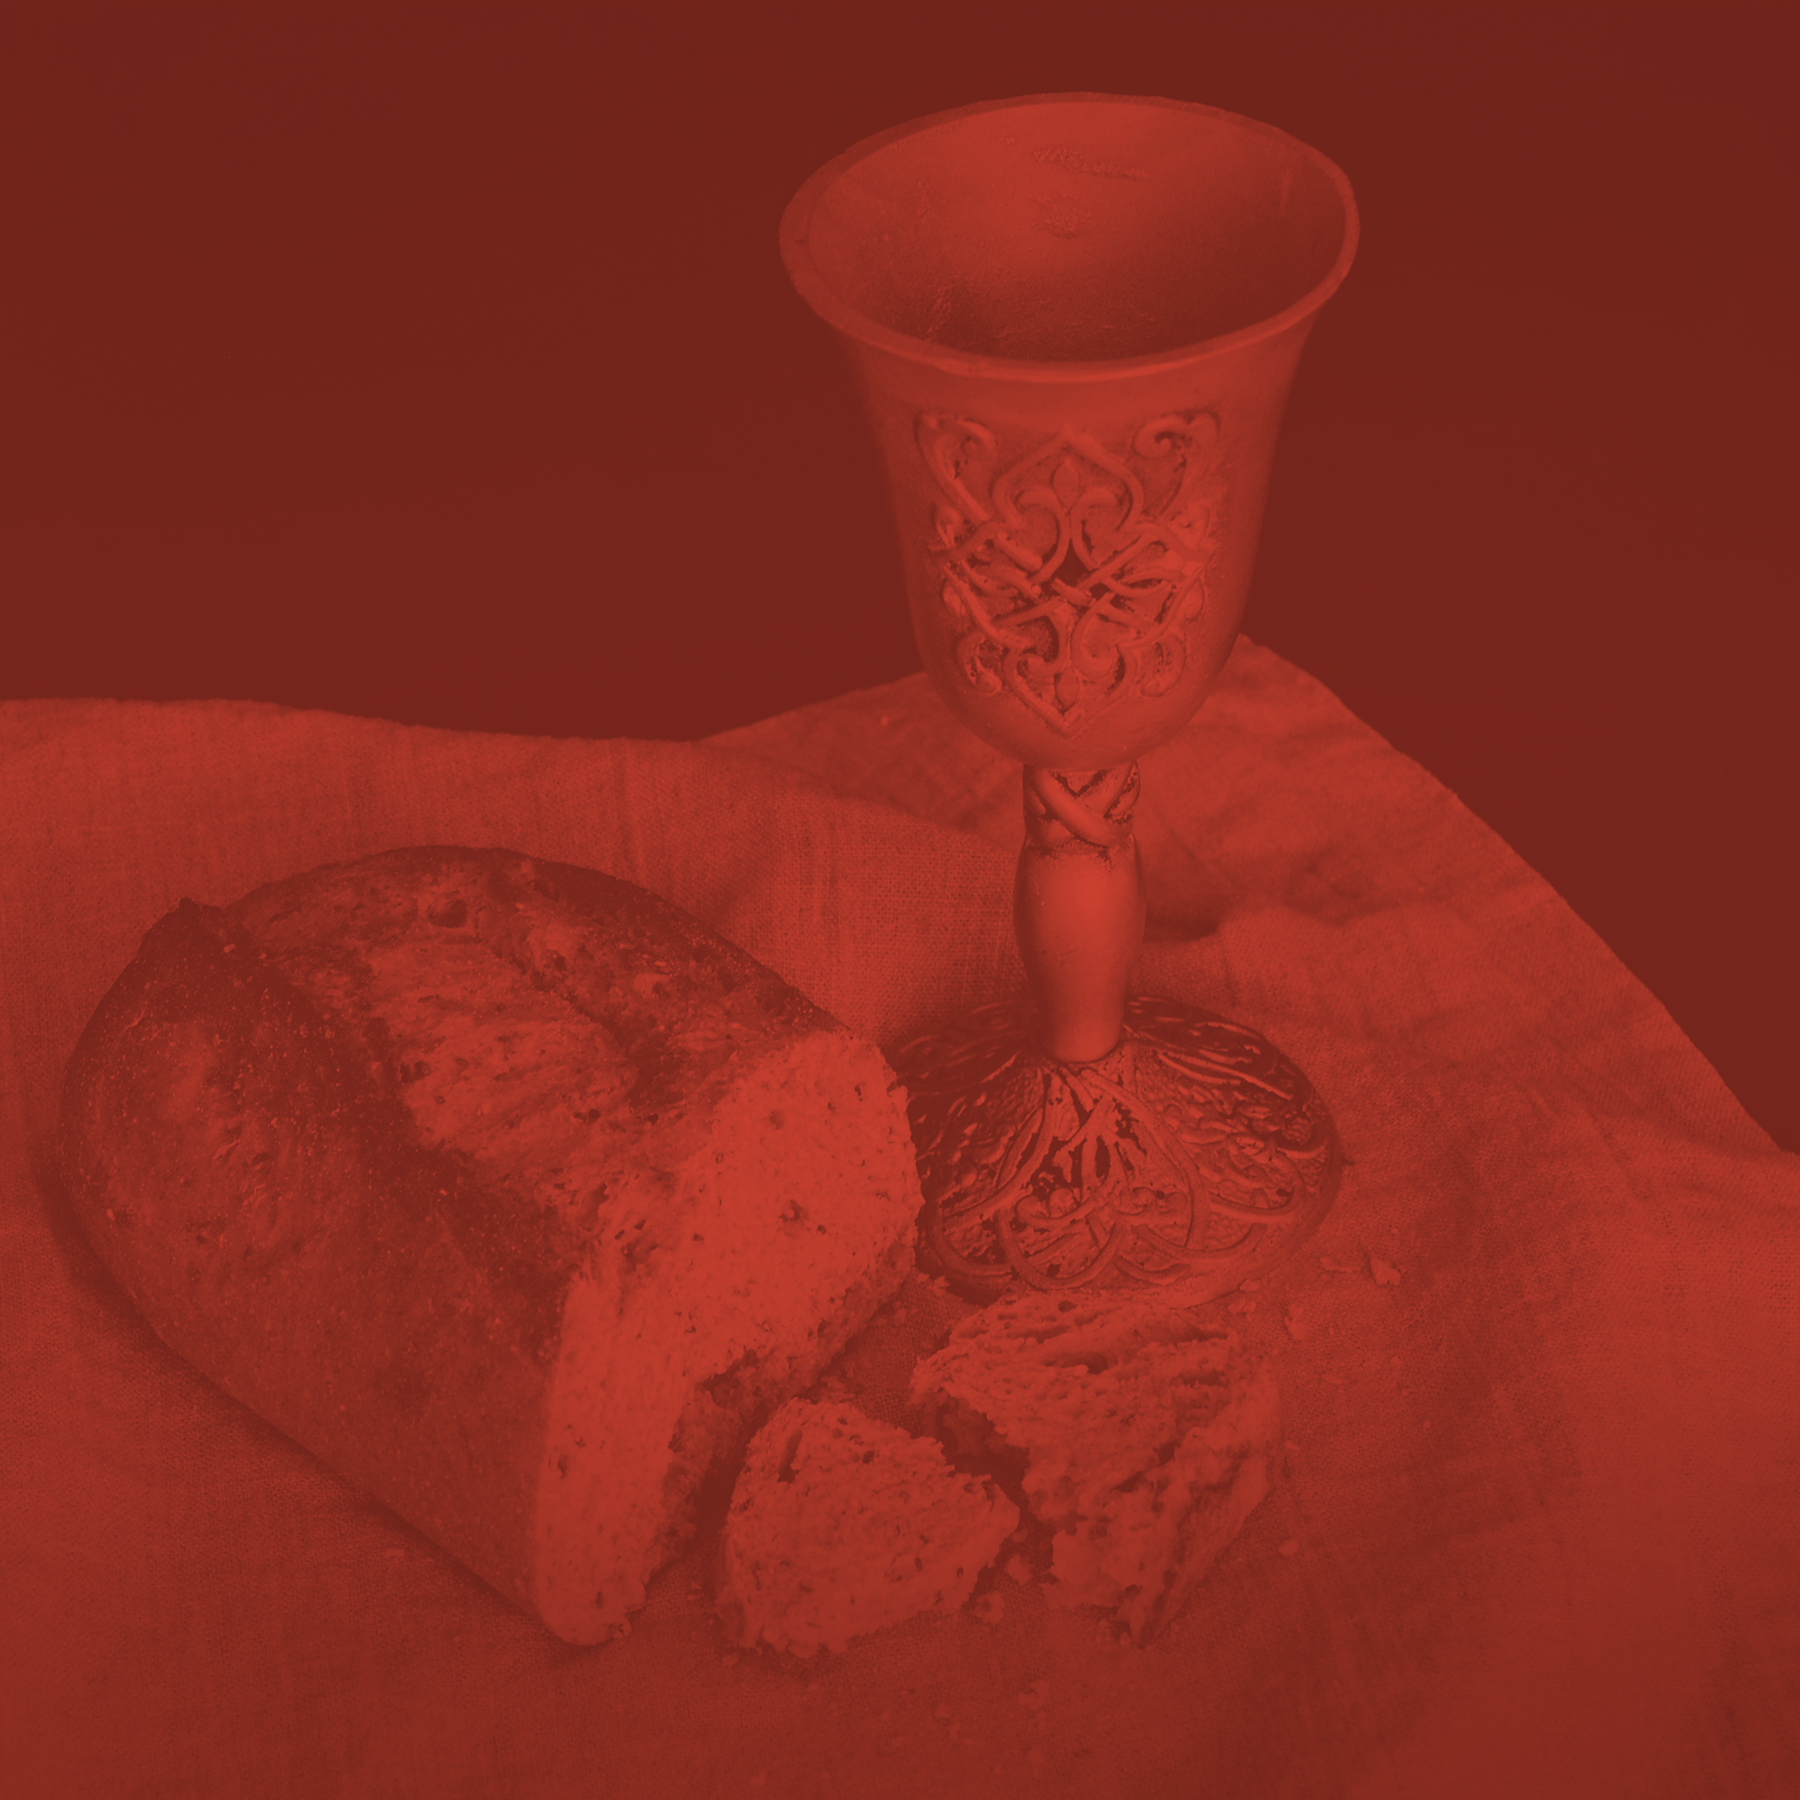 HOLY COMMUNION - Every first Sunday of the month